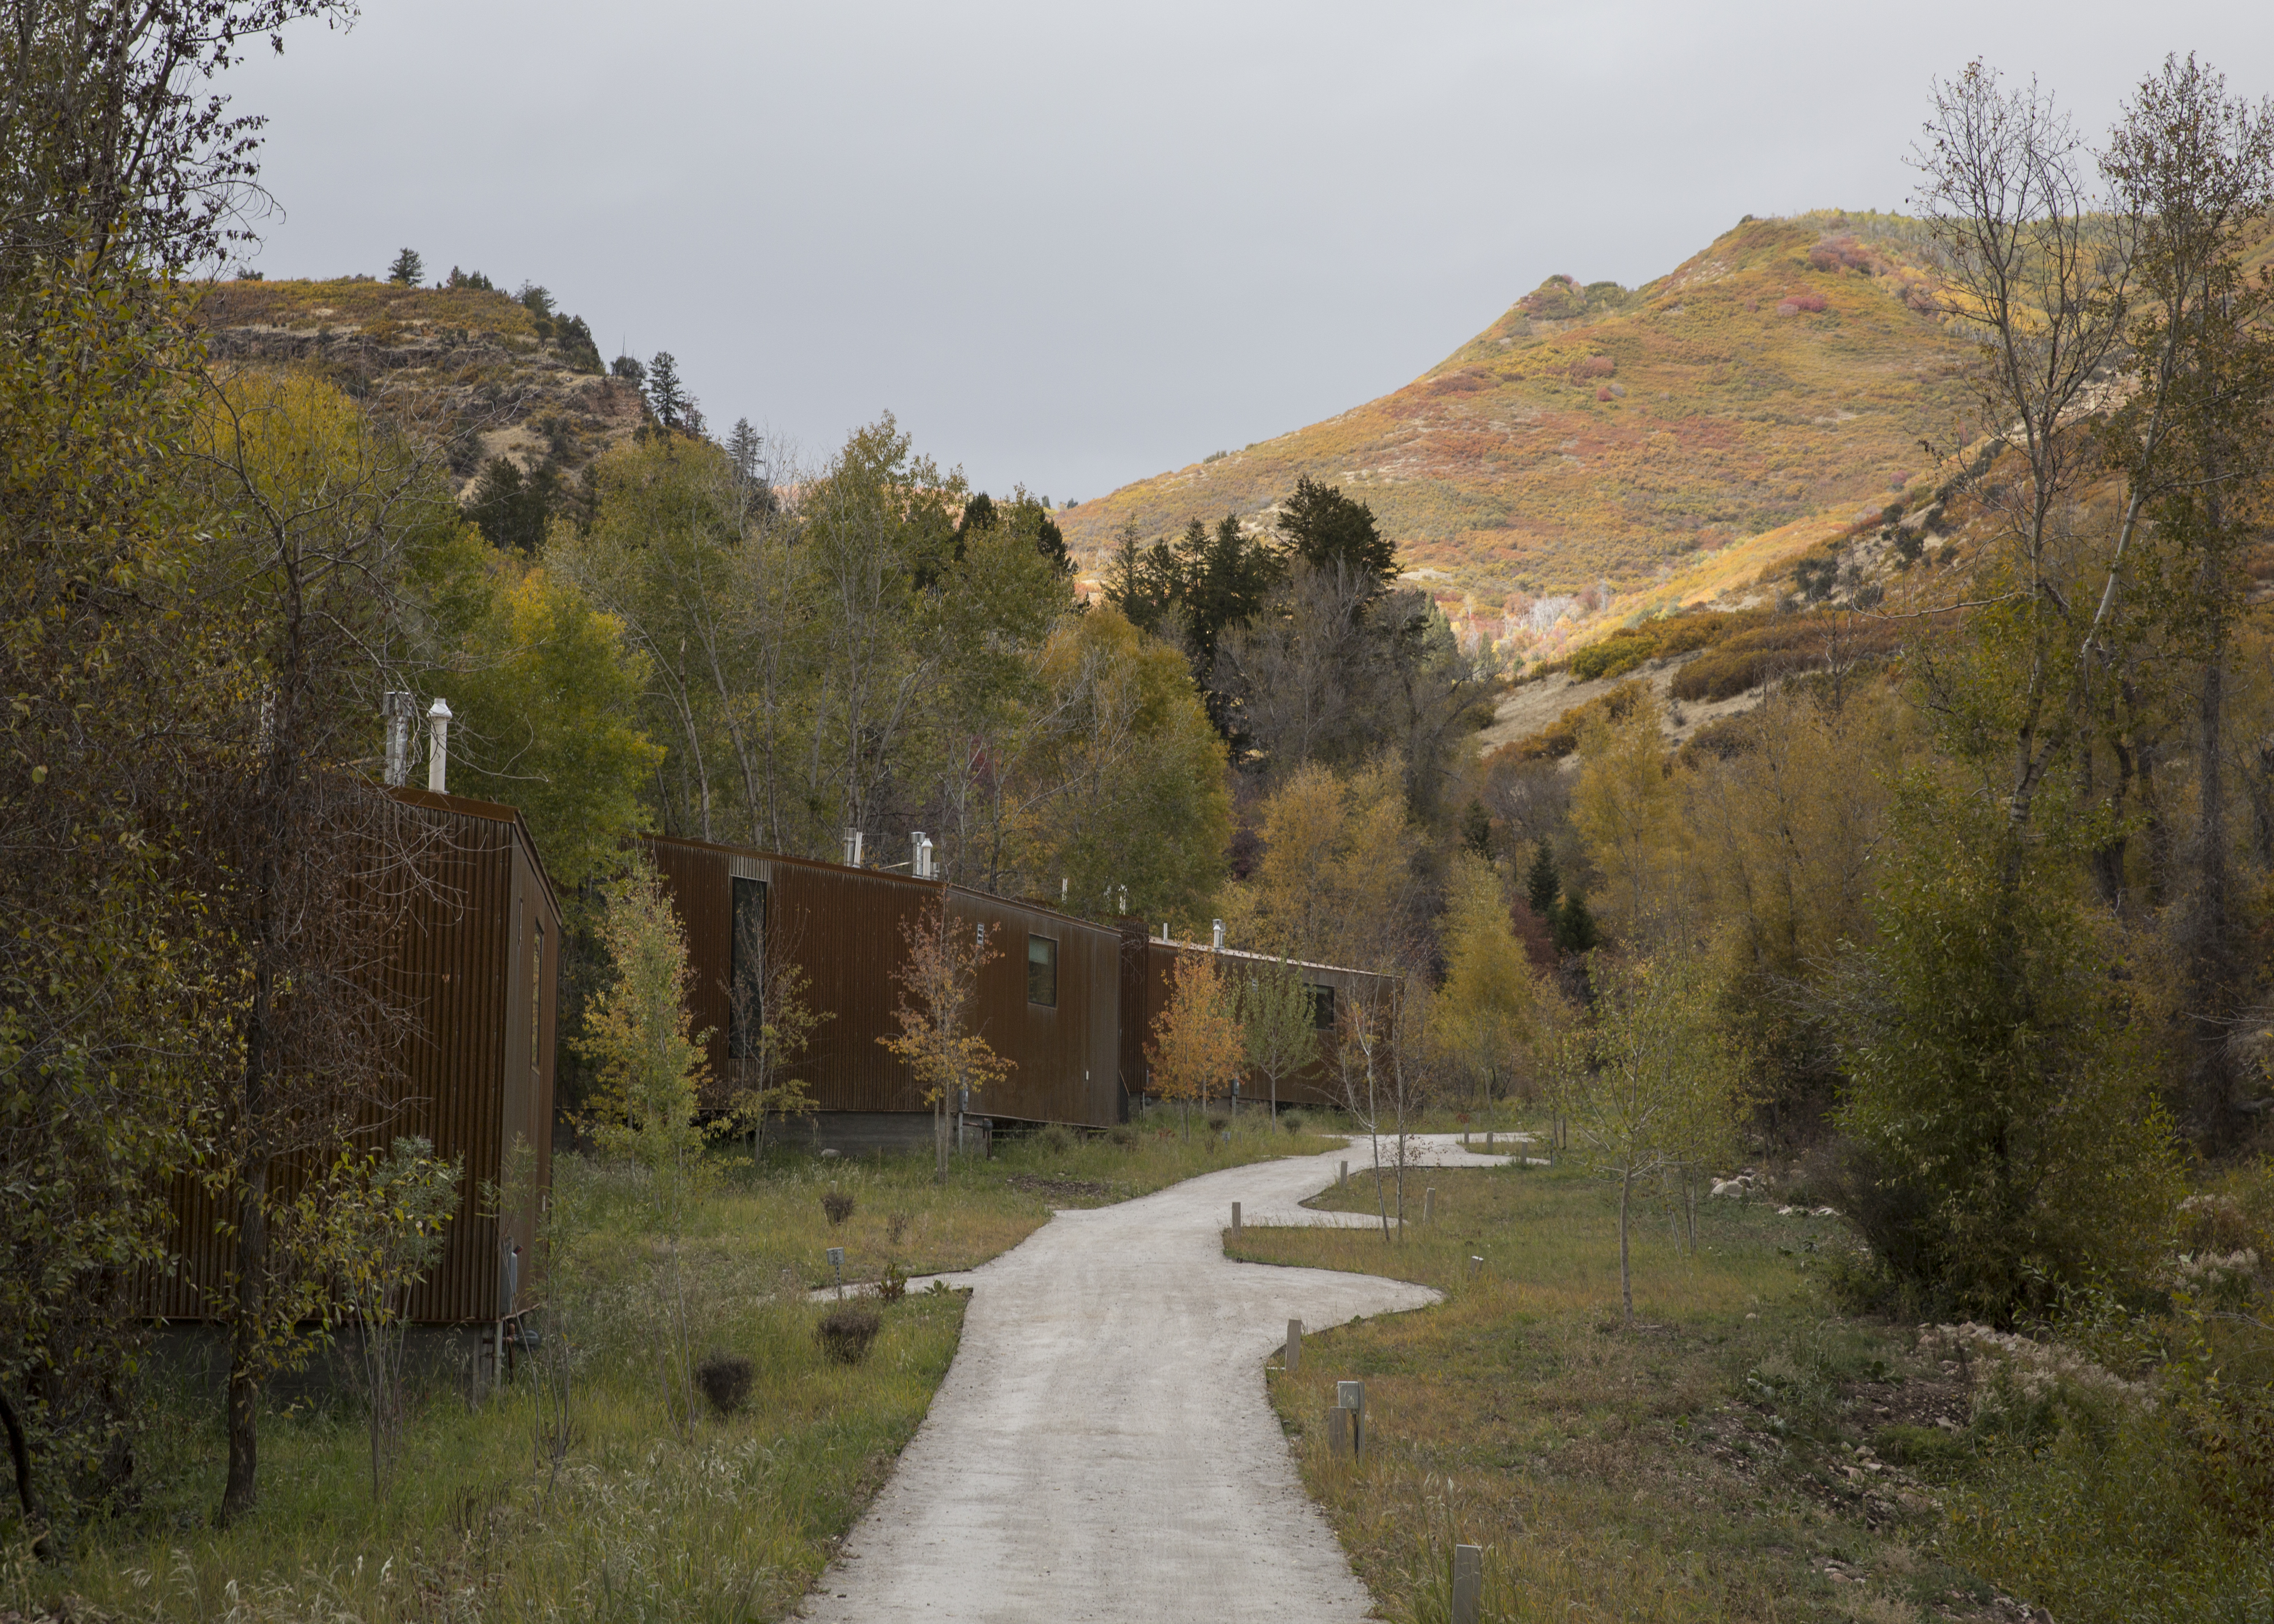 The Lodge at Blue Sky is seen as a large-scale example of agritourism, an approach that could reinvigorate the East Side